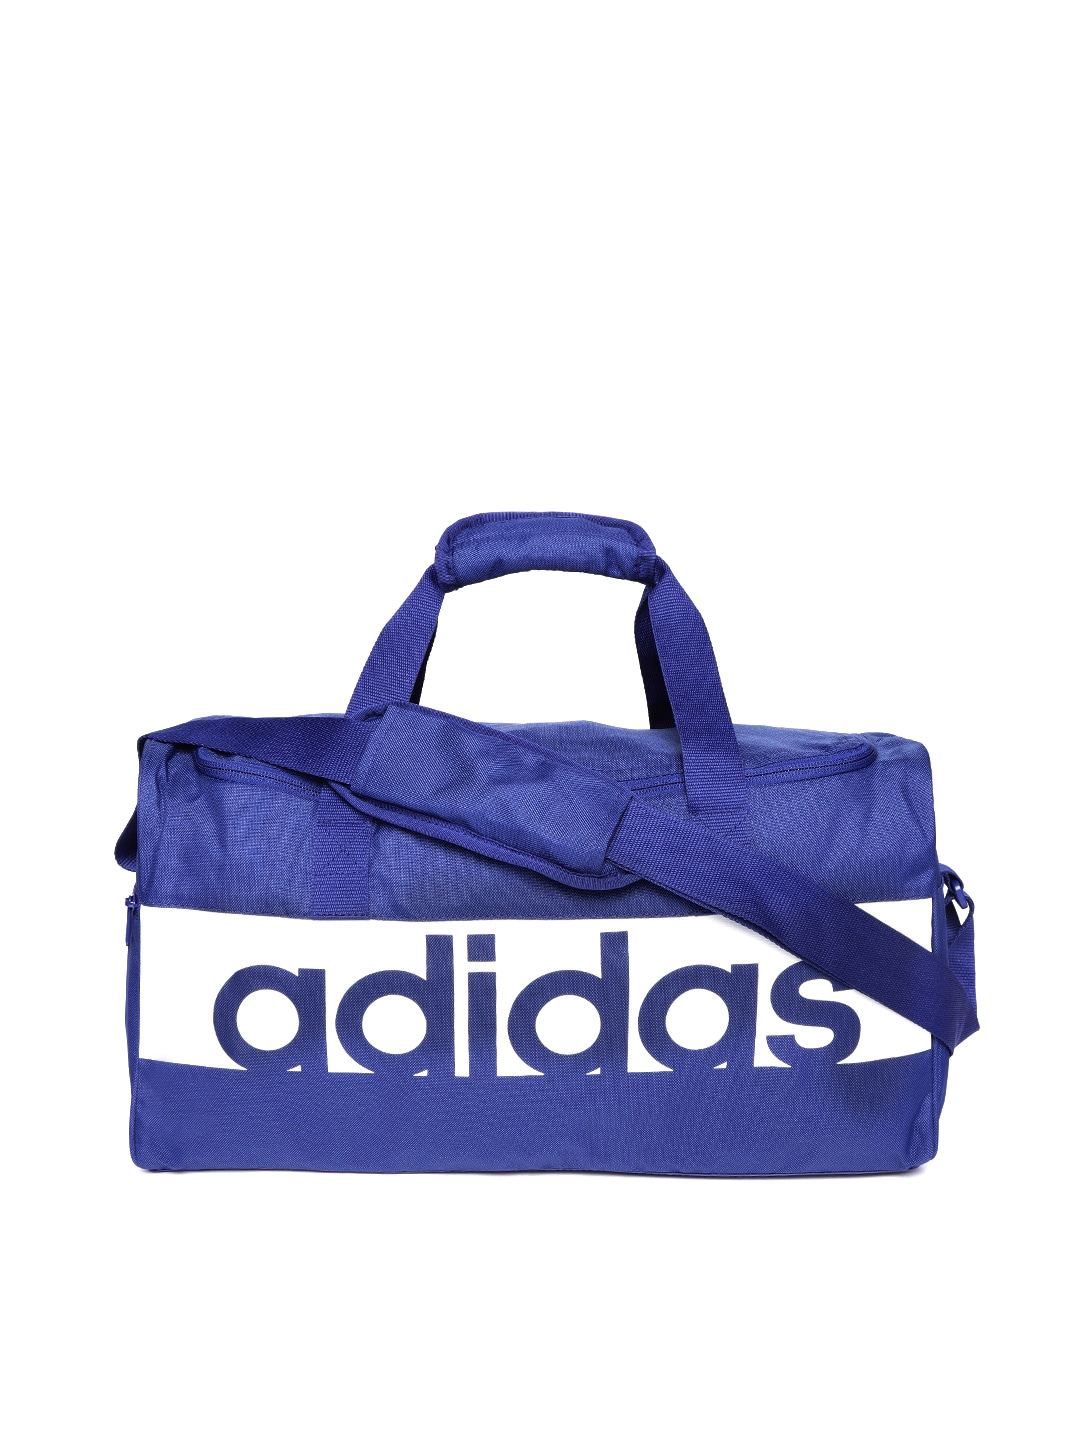 03b9efa7f3a8 Adidas Power Tights Bags - Buy Adidas Power Tights Bags online in India